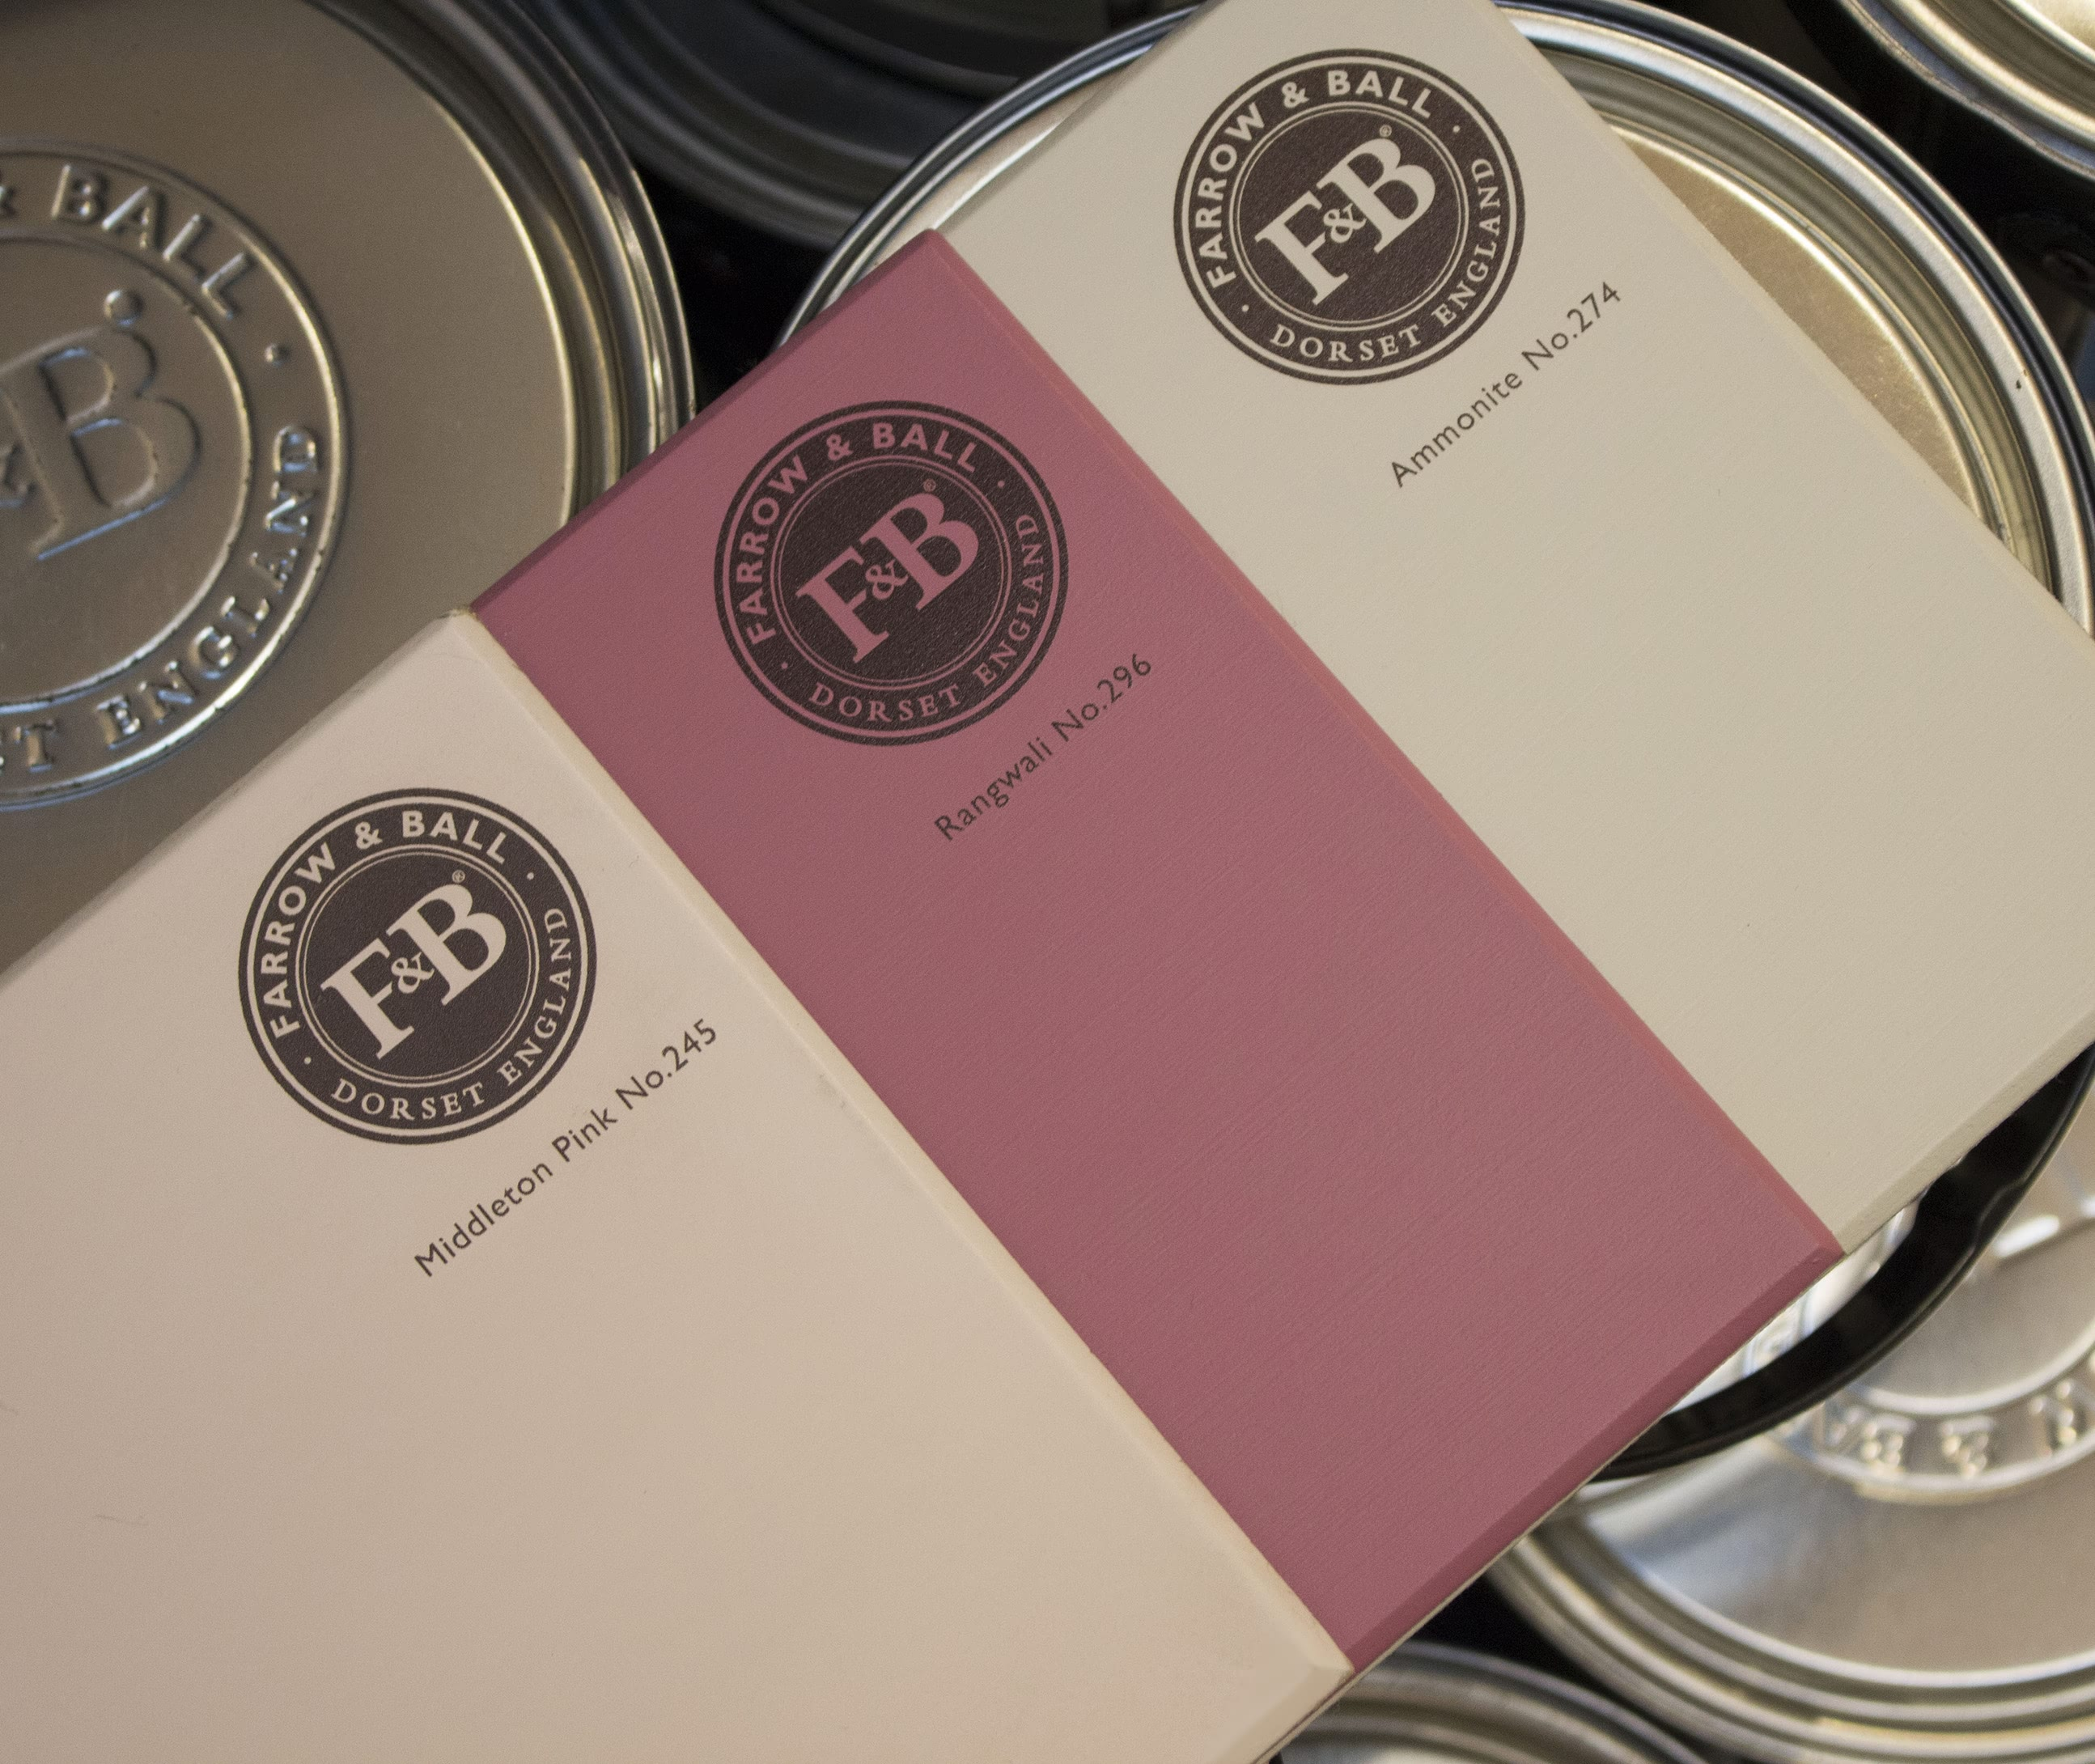 farrow&ball, farrow and ball, paint, decorating, paint brush, rangwali